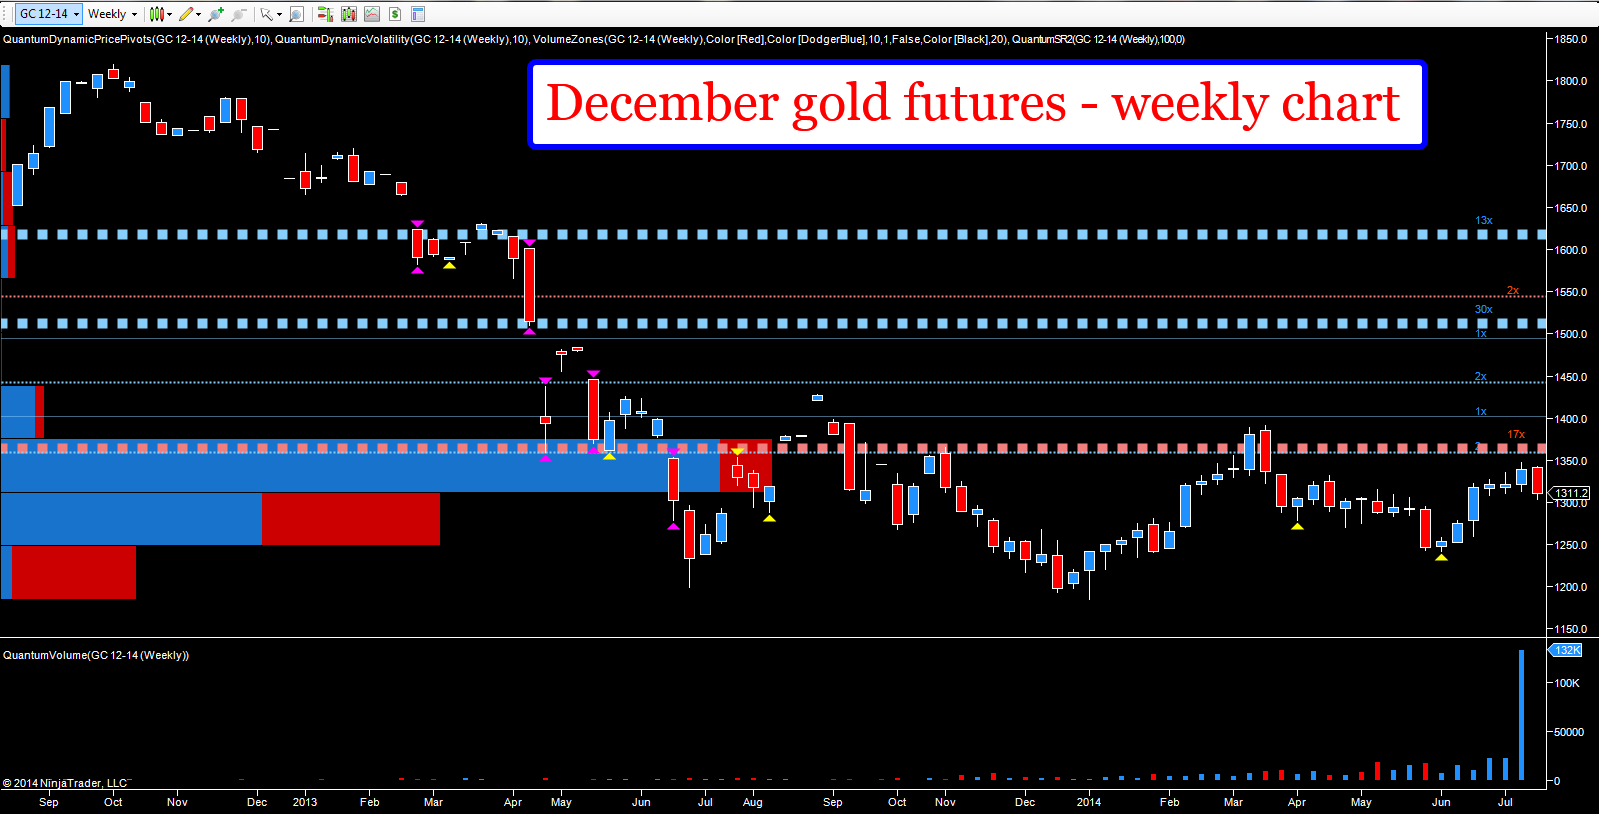 December gold futures - weekly chart